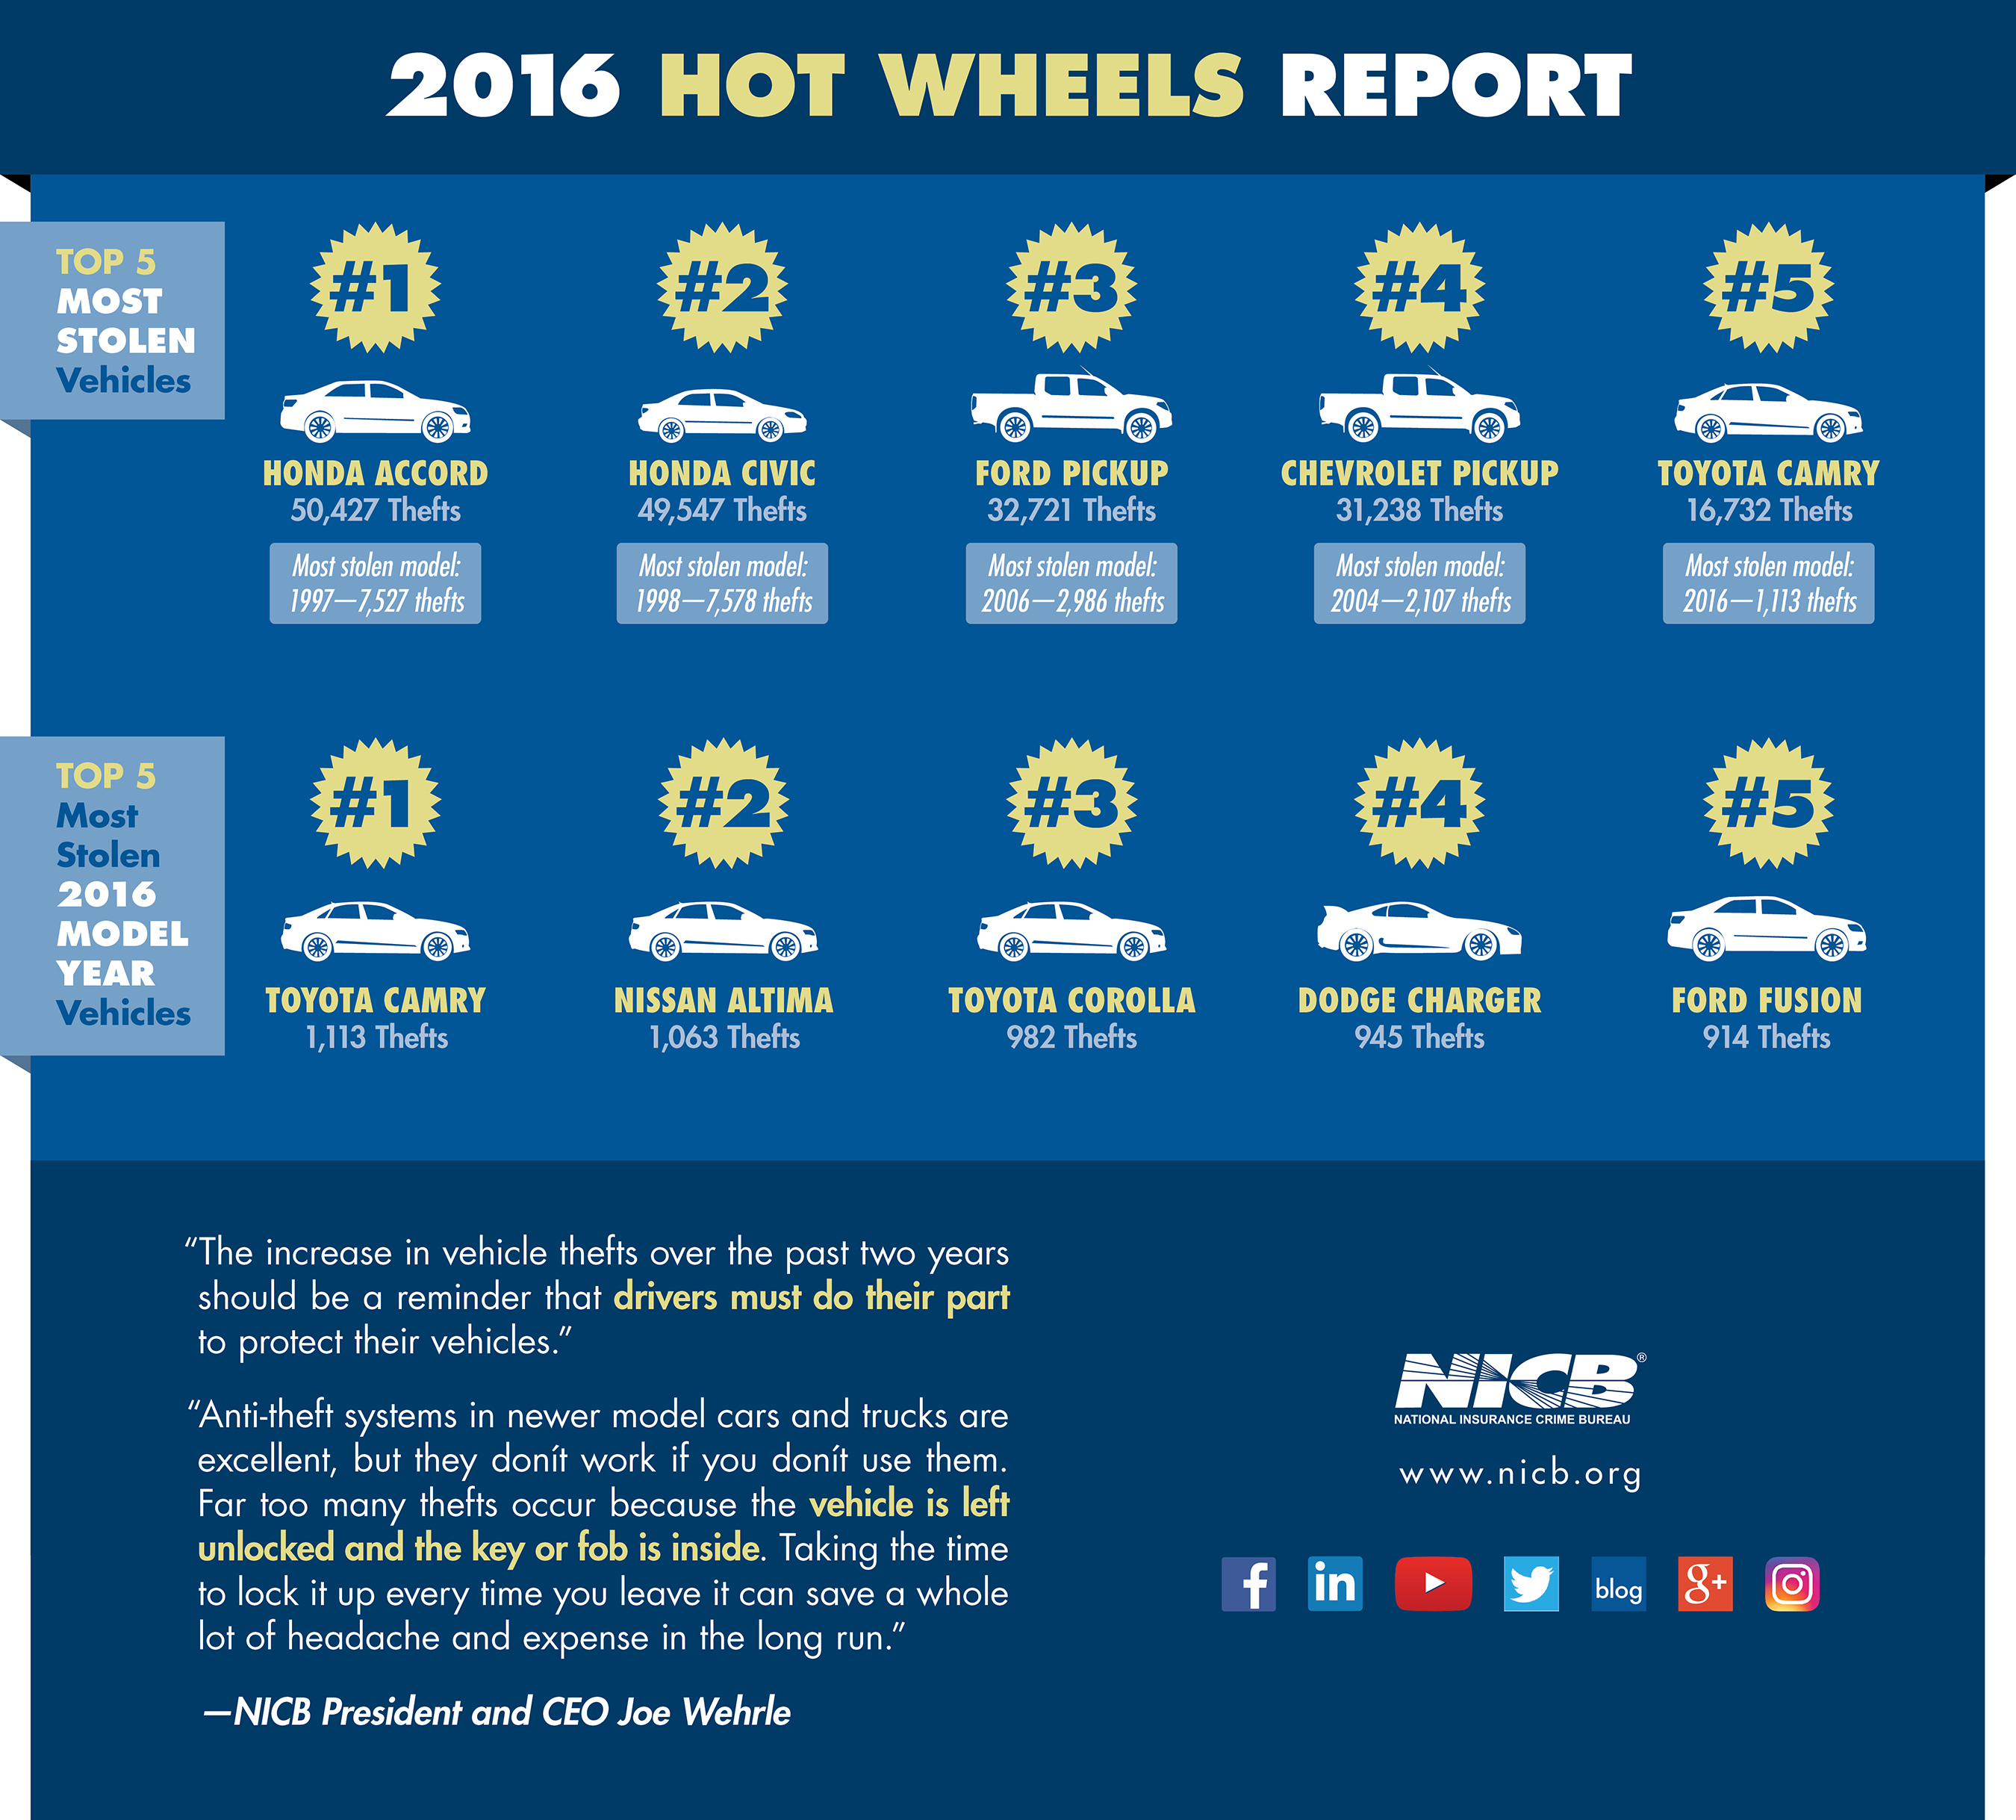 A snapshot of America's most-stolen vehicles in 2016